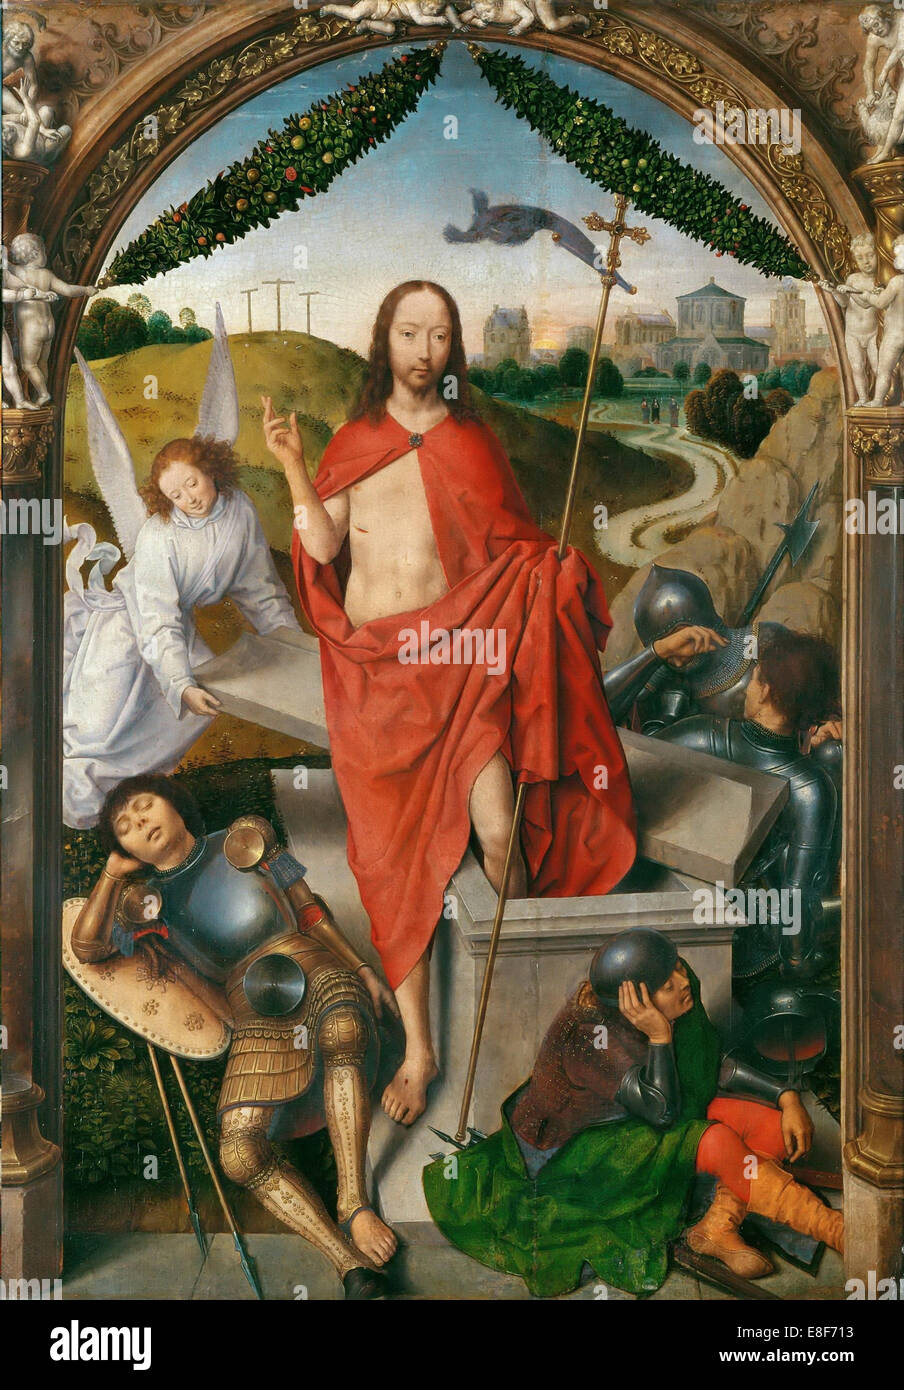 Triptych of The Resurrection (Central panel). Artist: Memling, Hans (1433/40-1494) - Stock Image